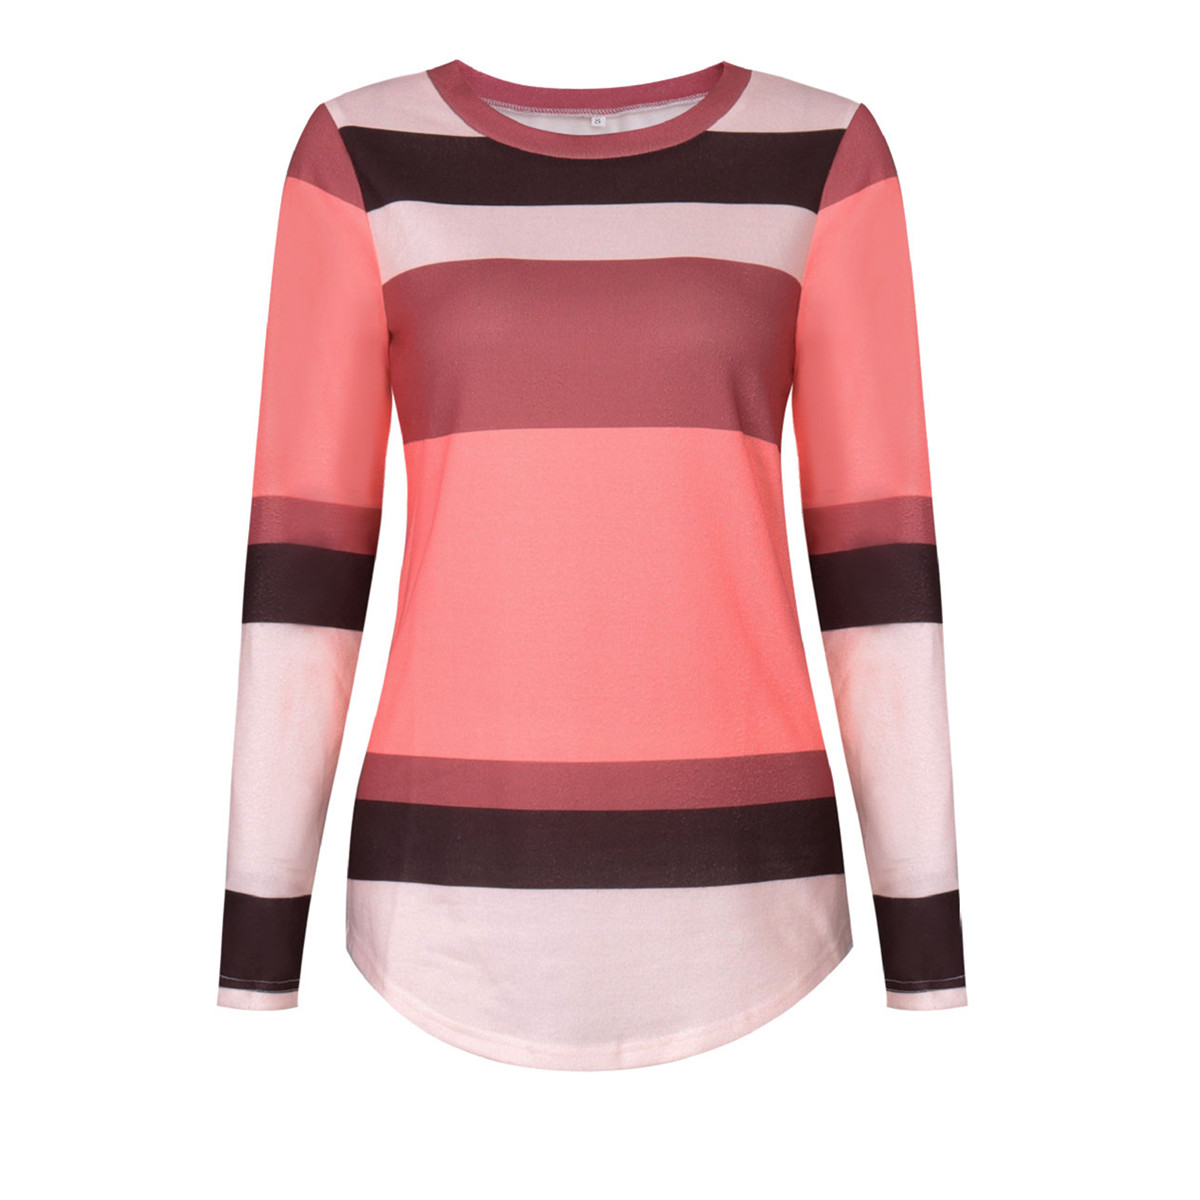 2927b351 Fashion Women T Shirts Casual Long Sleeve Knitted Shirts Sequins Elbow  Patch T Shirt Women Tops-in T-Shirts from Women's Clothing on  Aliexpress.com ...